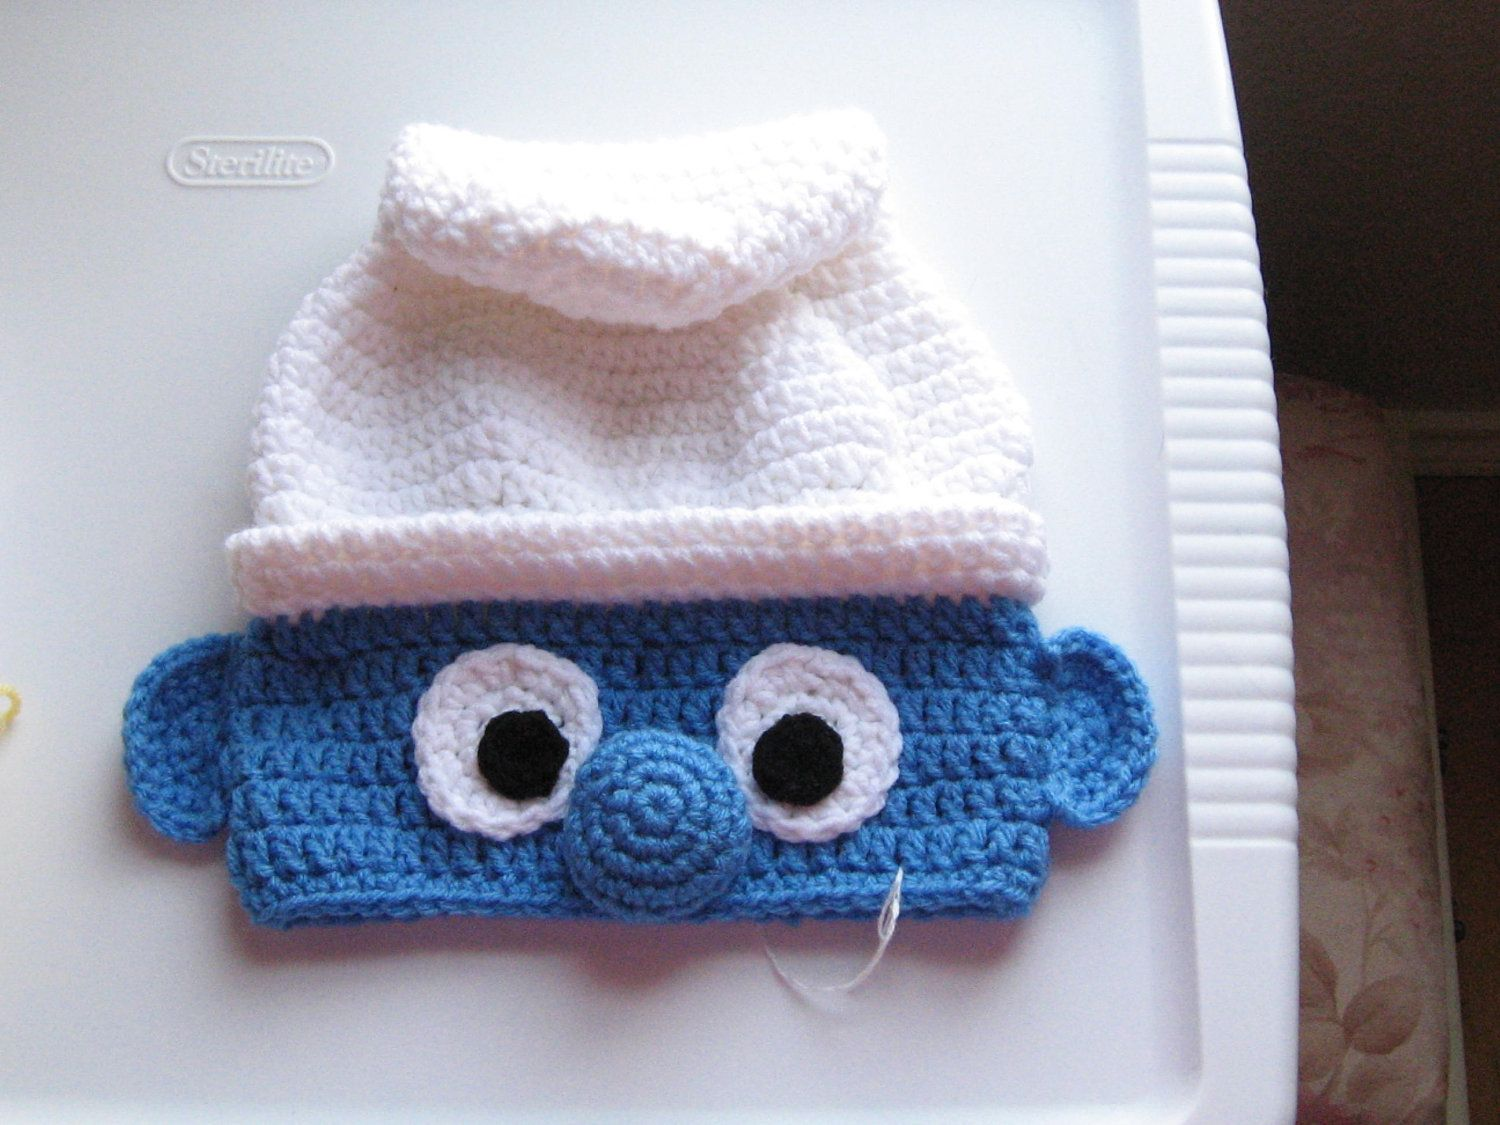 Child smurf inspired character hat crochet handmade crocheted new child smurf inspired character hat crochet handmade crocheted new 2499 via etsy bankloansurffo Image collections